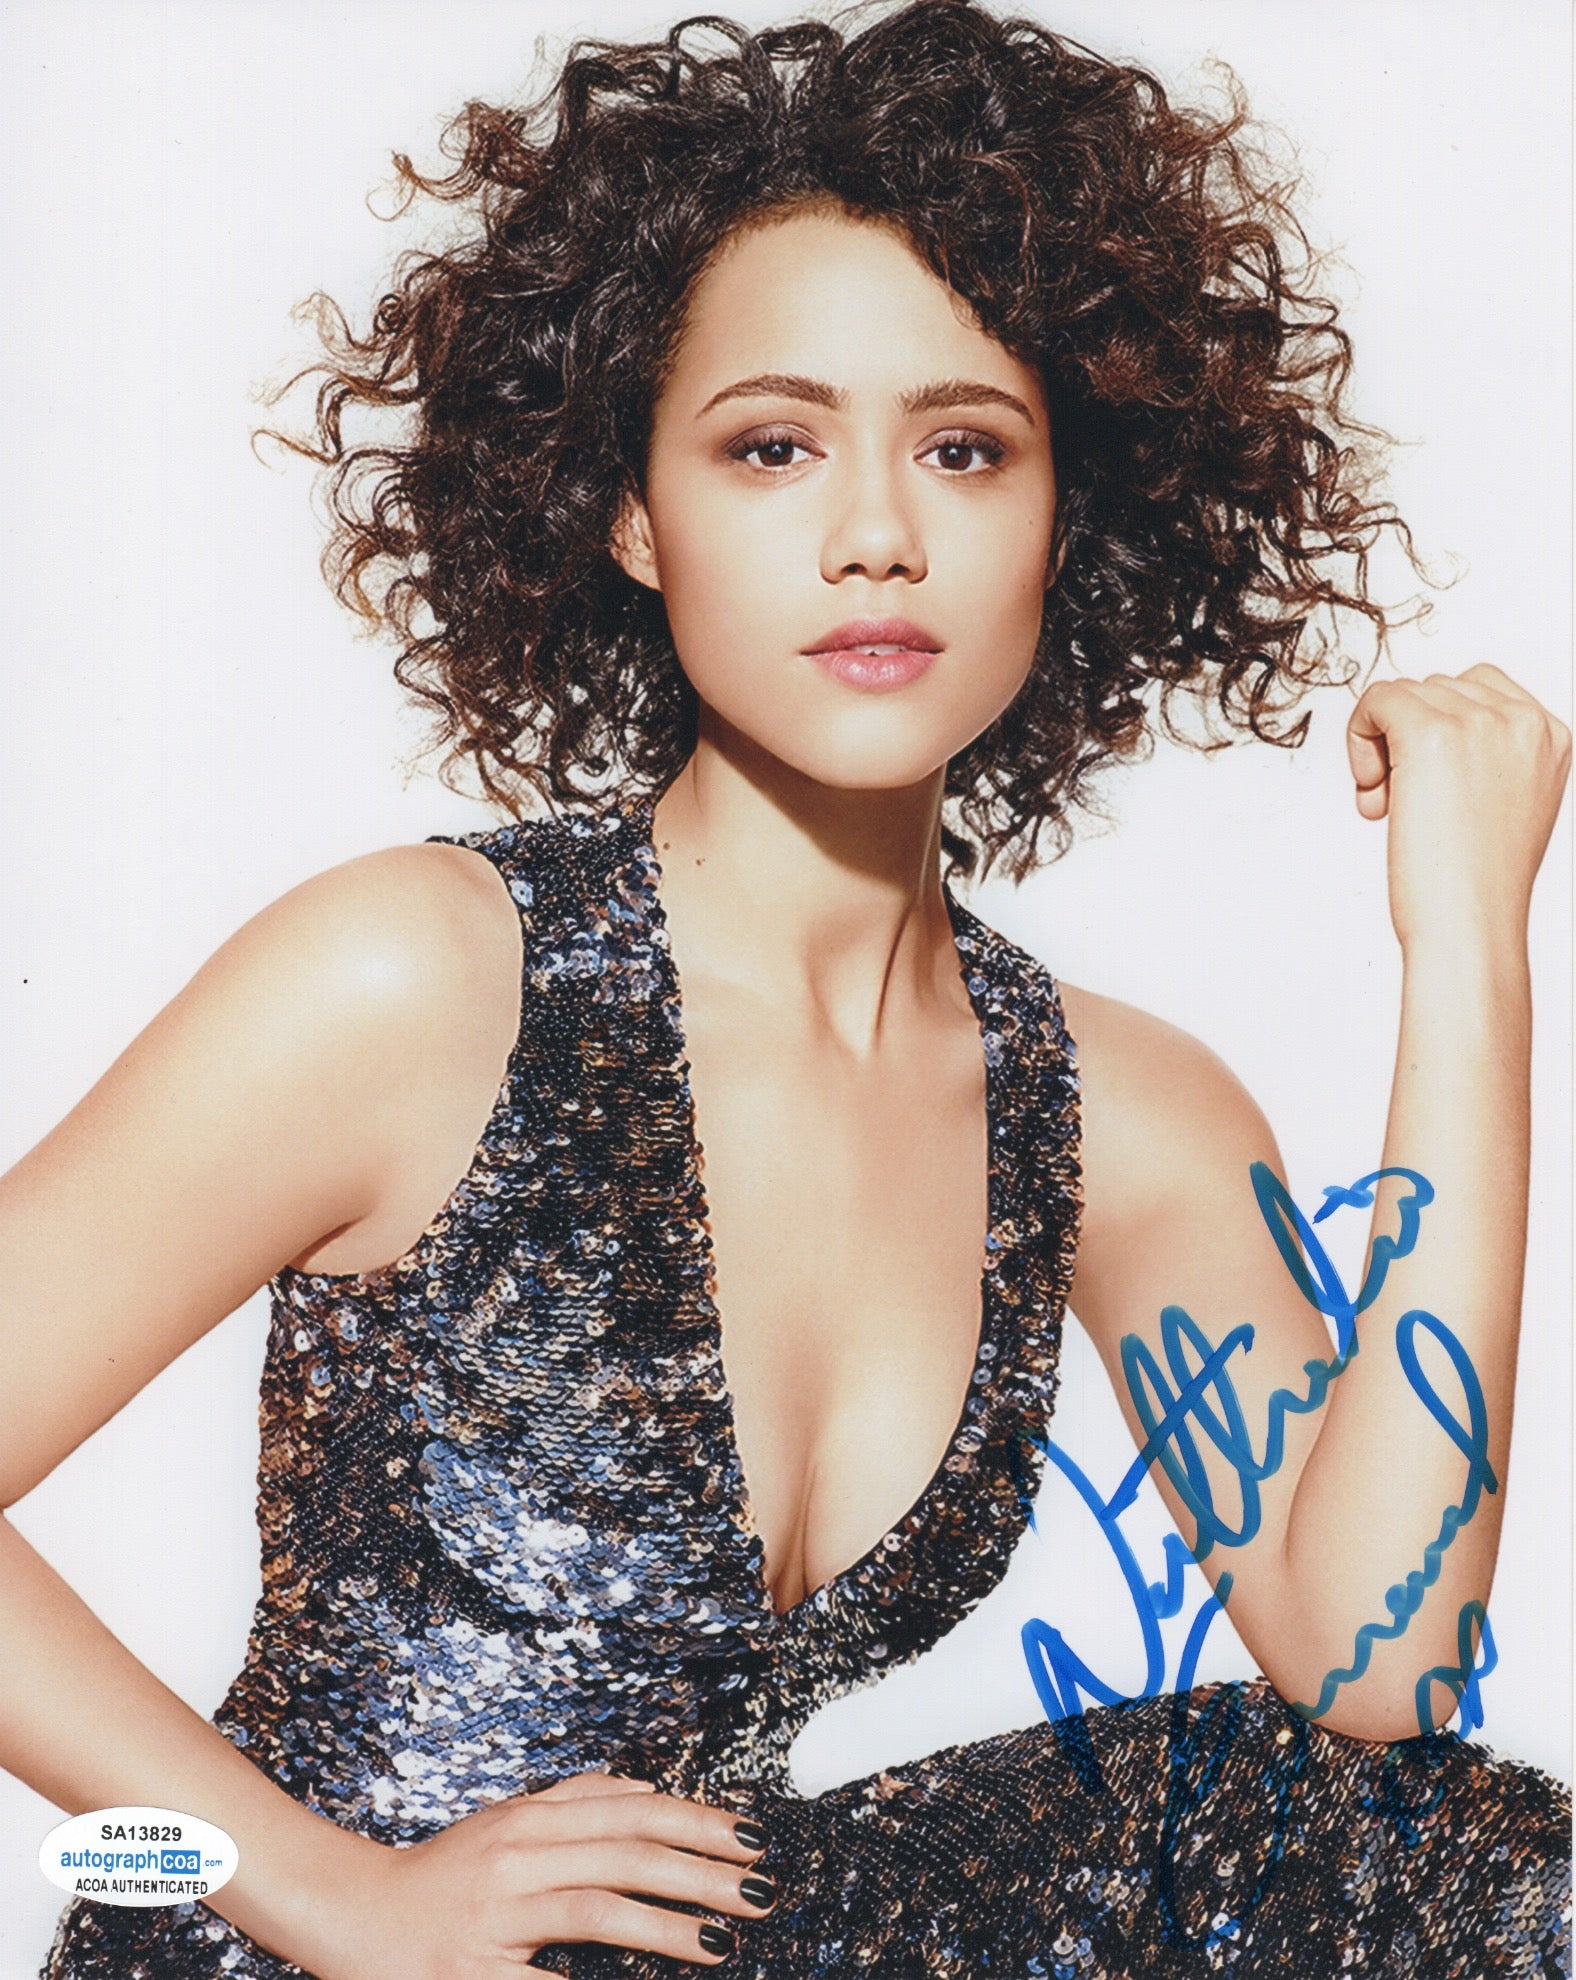 Nathalie Emmanuelle Sexy Game of Thrones Signed Autograph 8x10 Photo #3 - Outlaw Hobbies Authentic Autographs